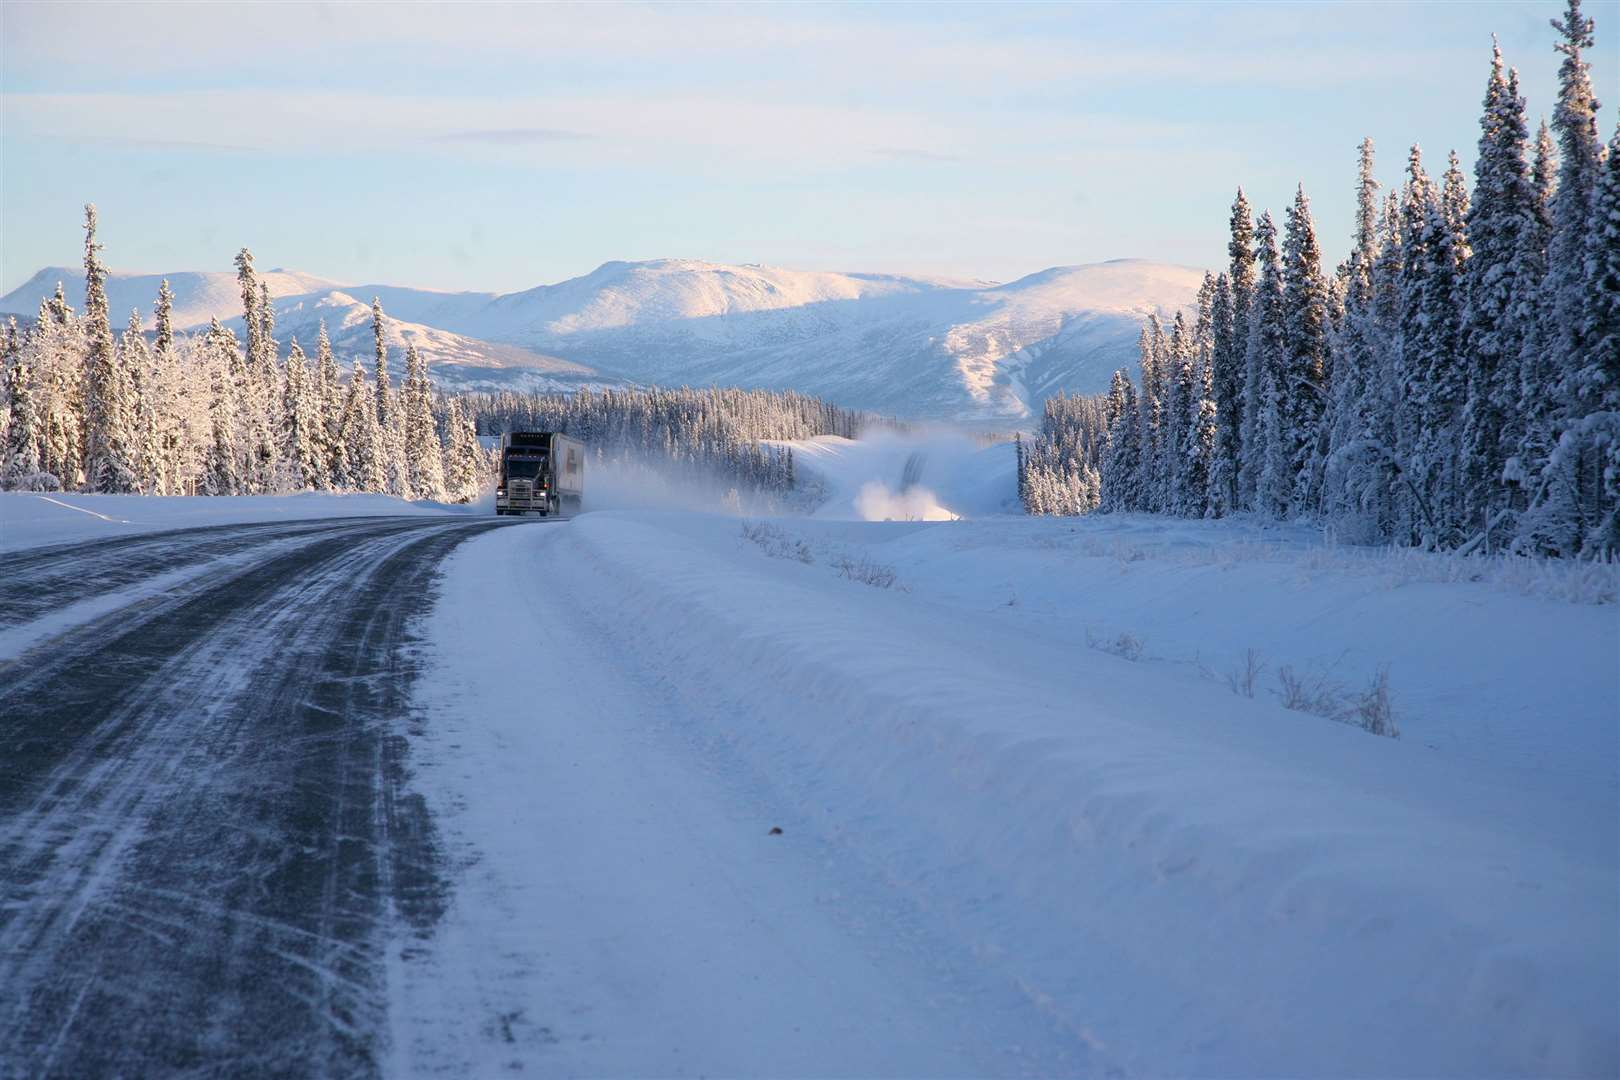 A truck on the Klondike Highway. Picture: PA Photo/Holger Bergold